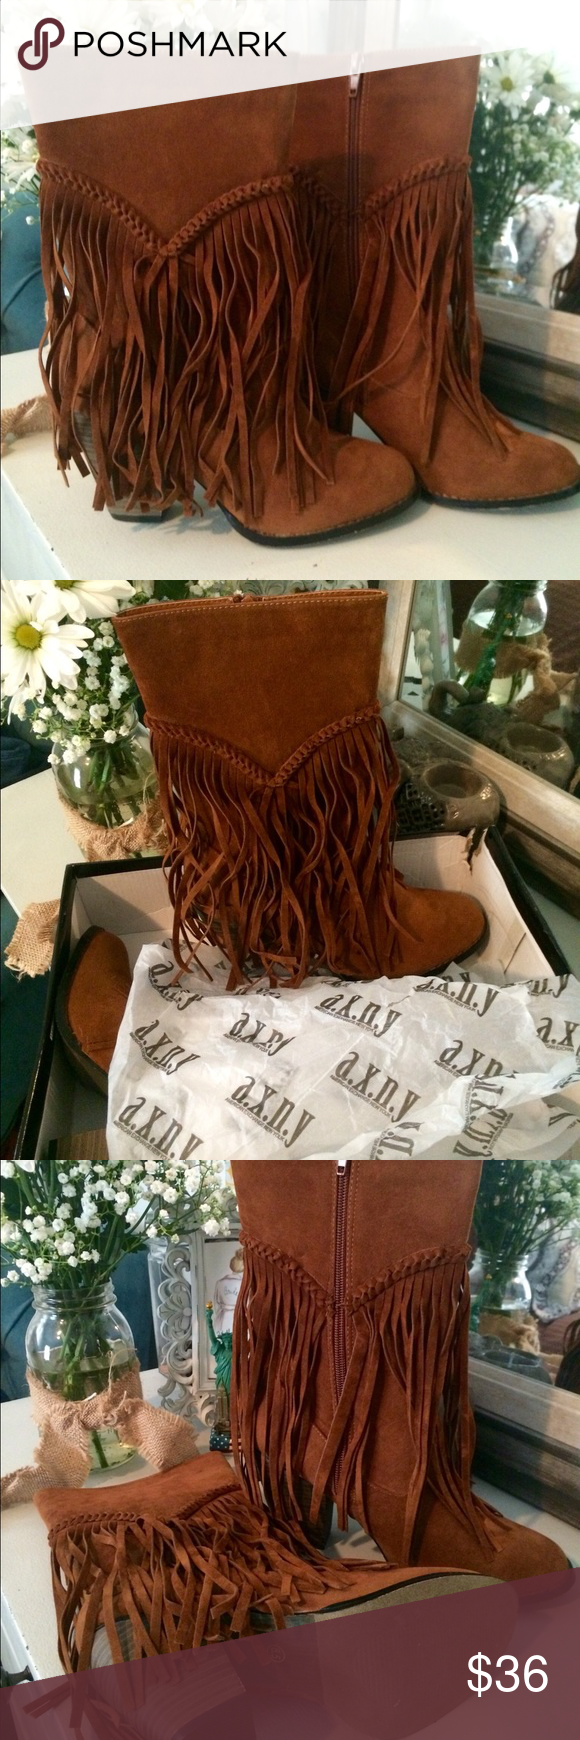 AXNY Fringe Boots AXNY Fringe Boots. Heel height about 2-3in. New in box. Never been worn. Size 8.5. American Exchange New York Shoes Heeled Boots